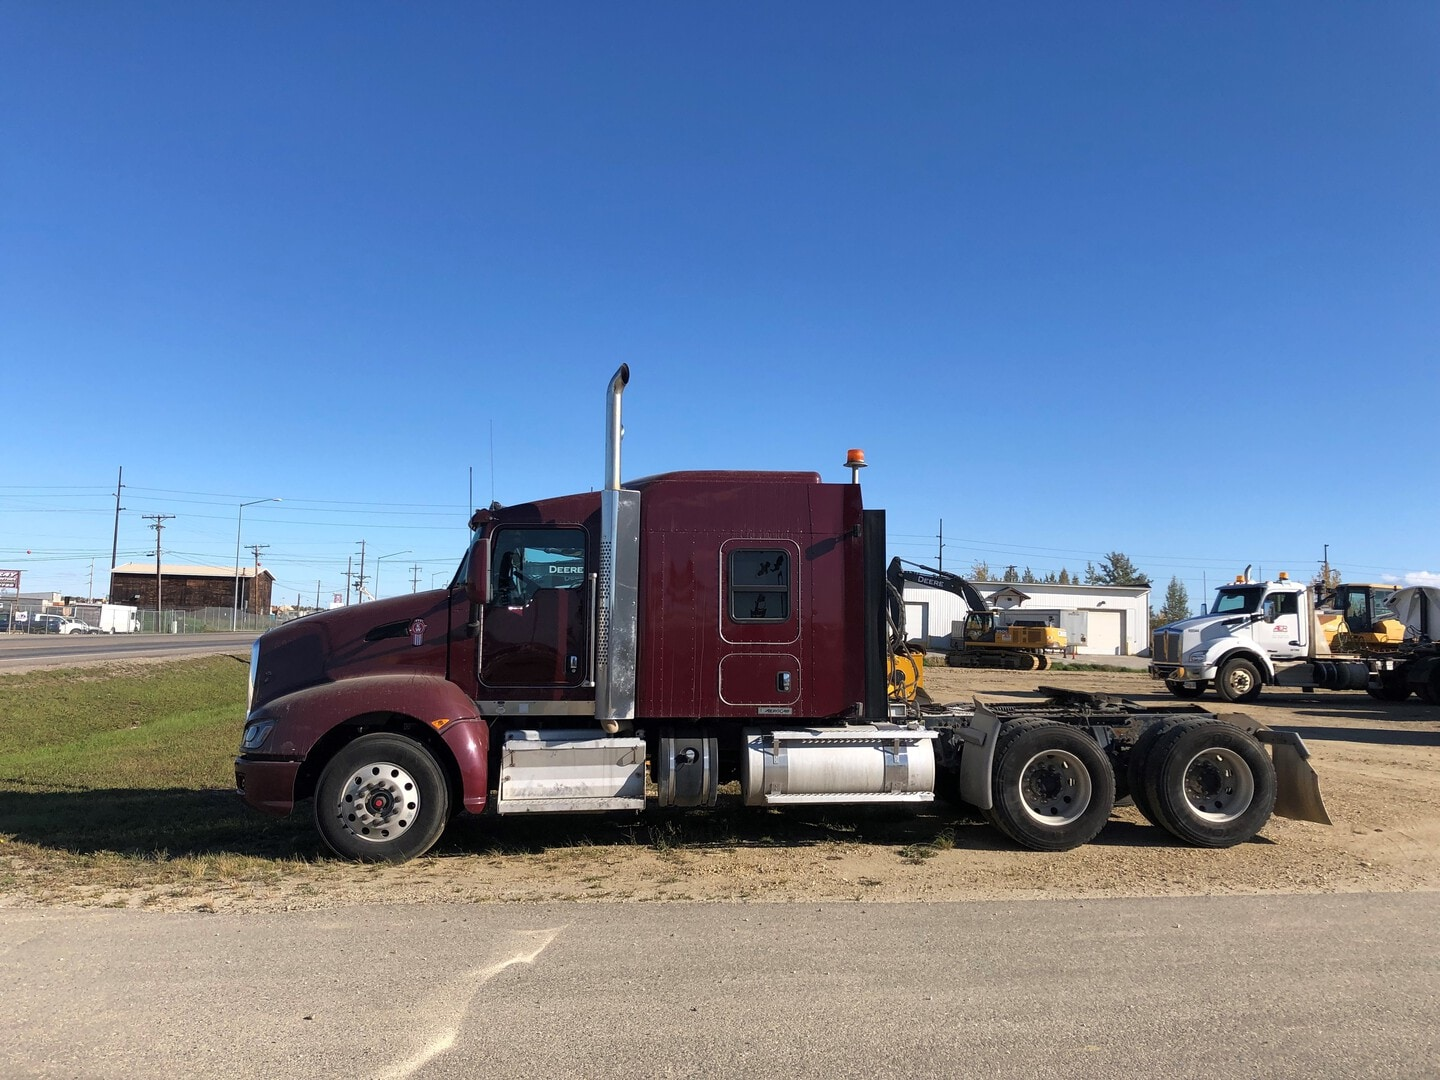 Used, 2014, Kenworth, T-660, Cab / Chassis Trucks